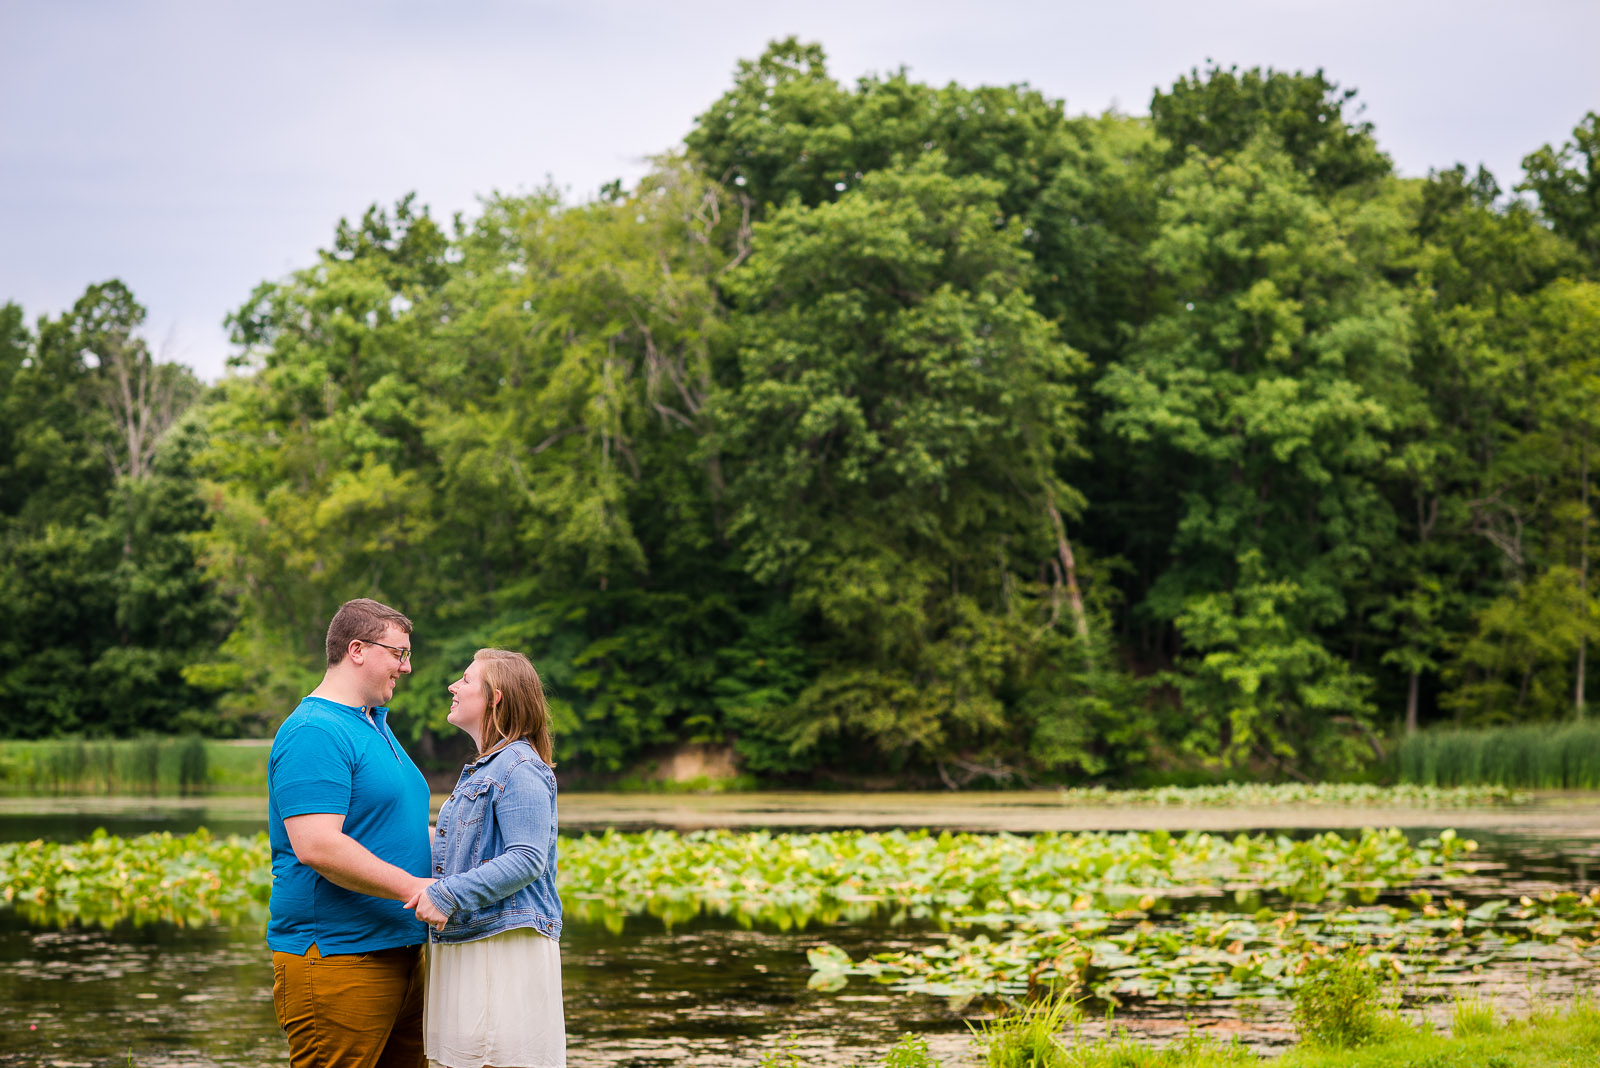 Eric_and_Christy_Photography_Blog_2017_Best_Engagement-21